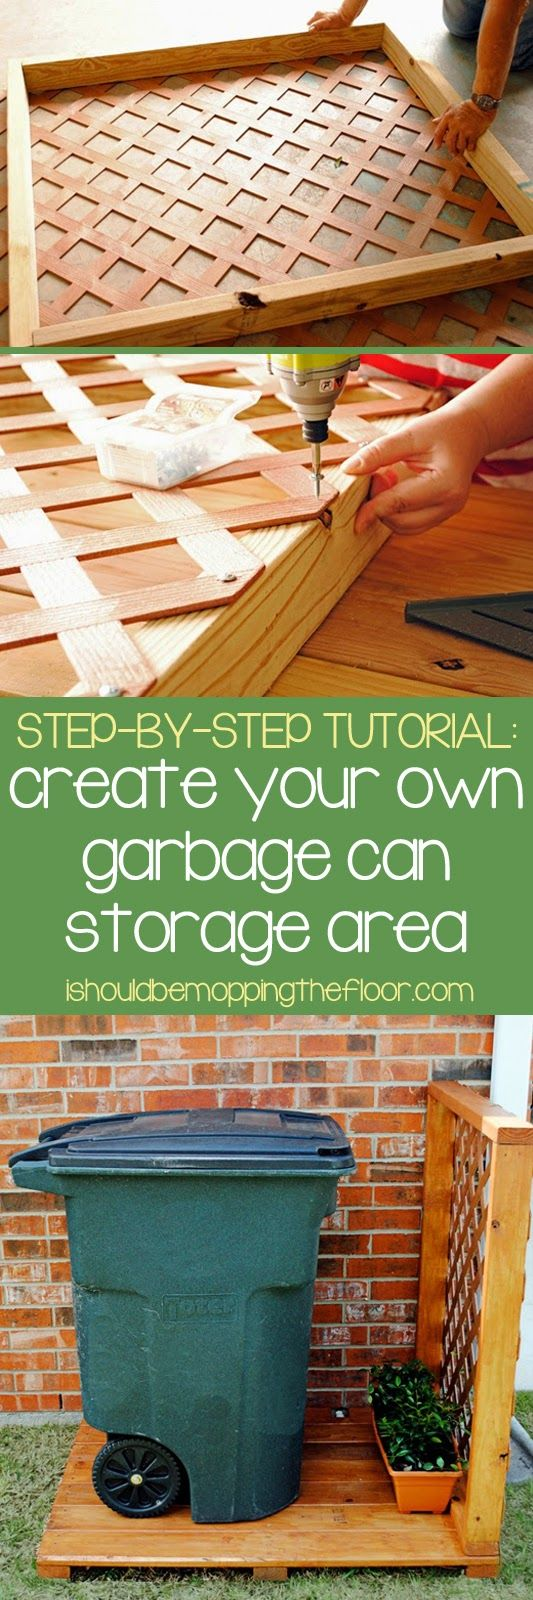 Create a Simple Garbage Can Storage Area. See more details